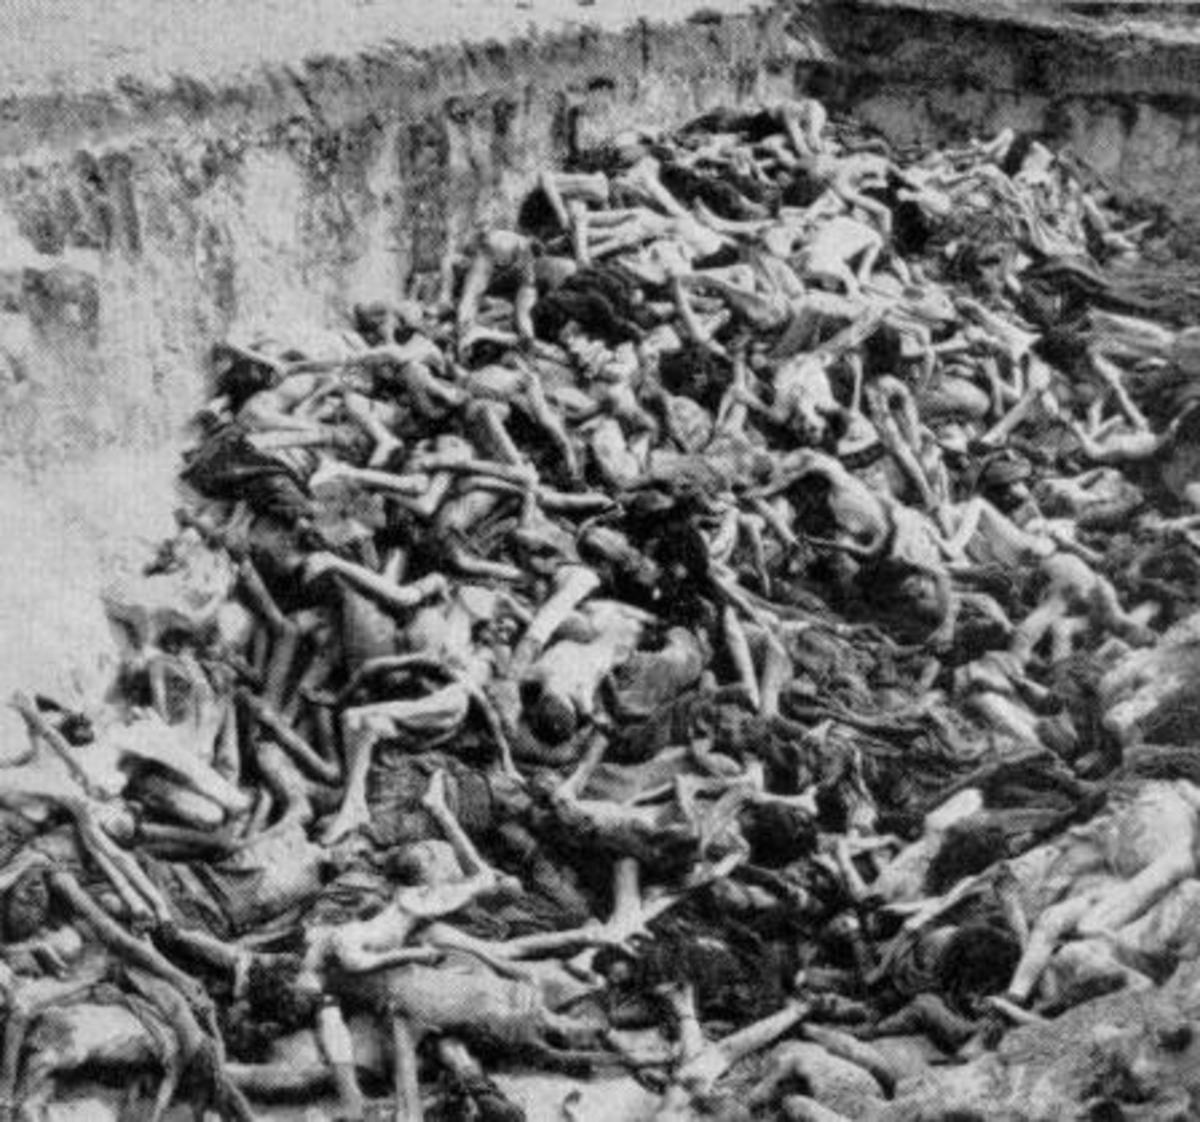 JEWISH HOLOCAUST SIX MILLION PERSON GENOCIDE STILL DENIED TODAY BY MANY MUSLIMS